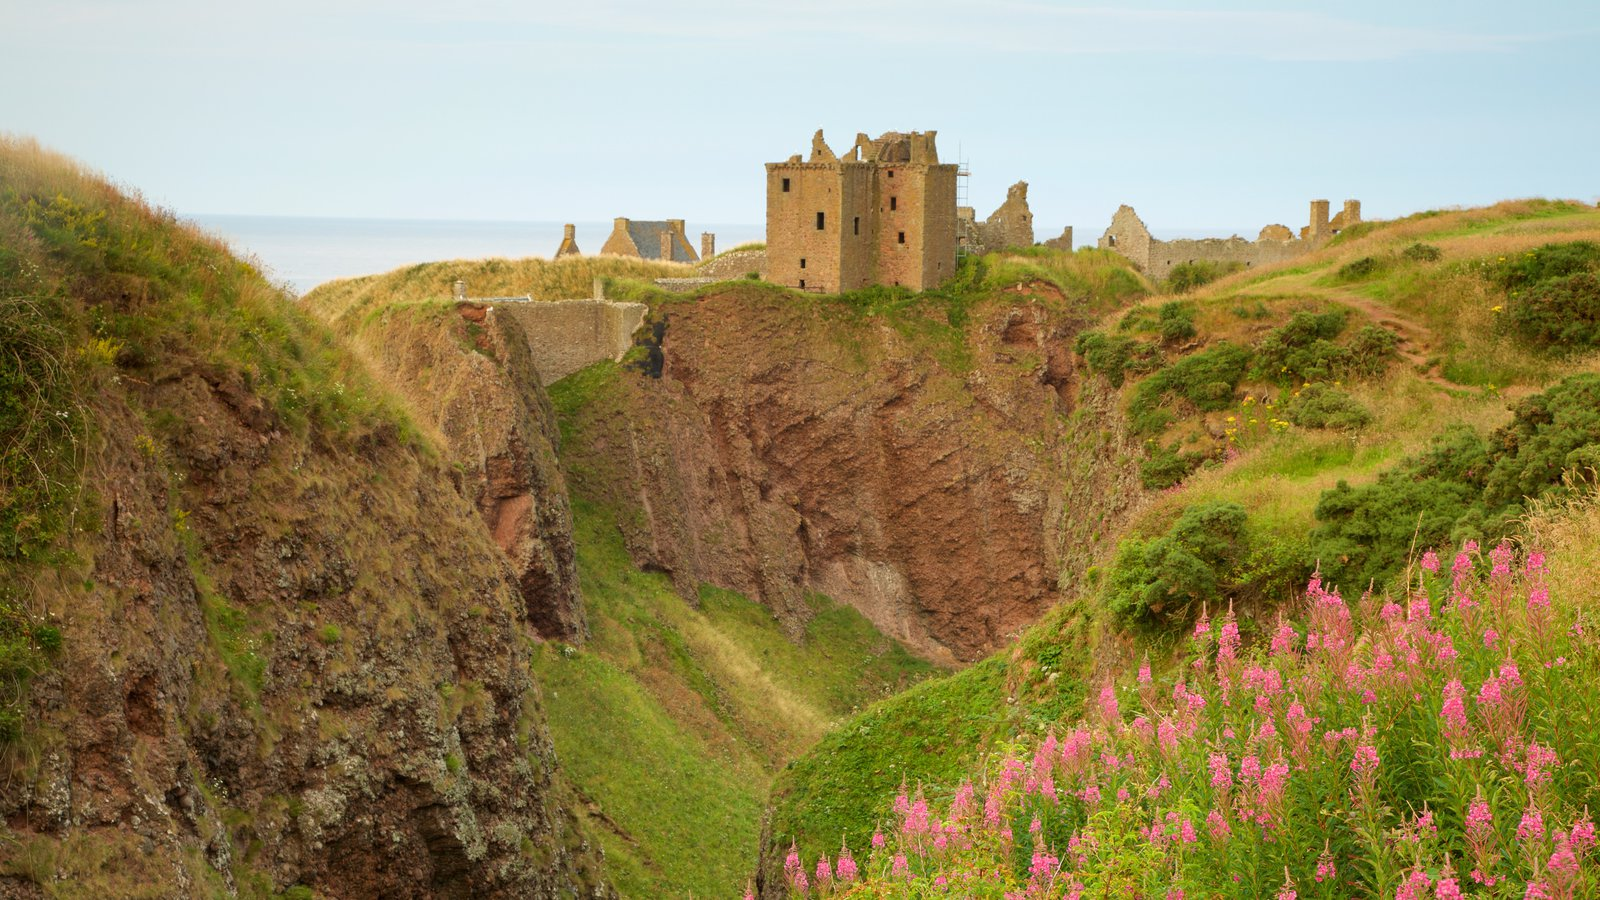 Dunnottar Castle which includes farmland and a gorge or canyon